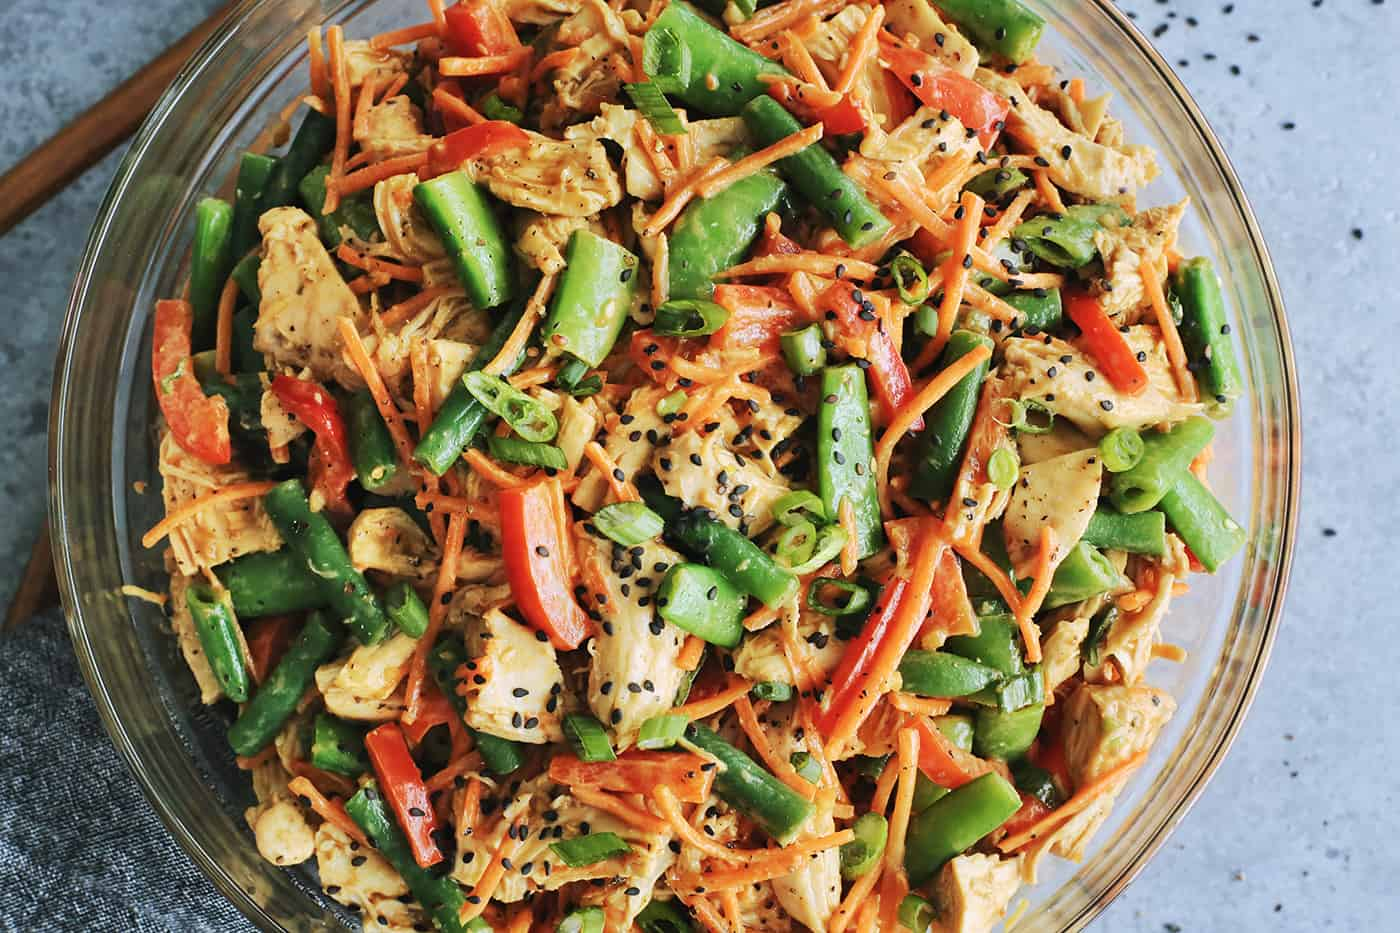 chicken salad with creamy peanut sauce in a clear bowl